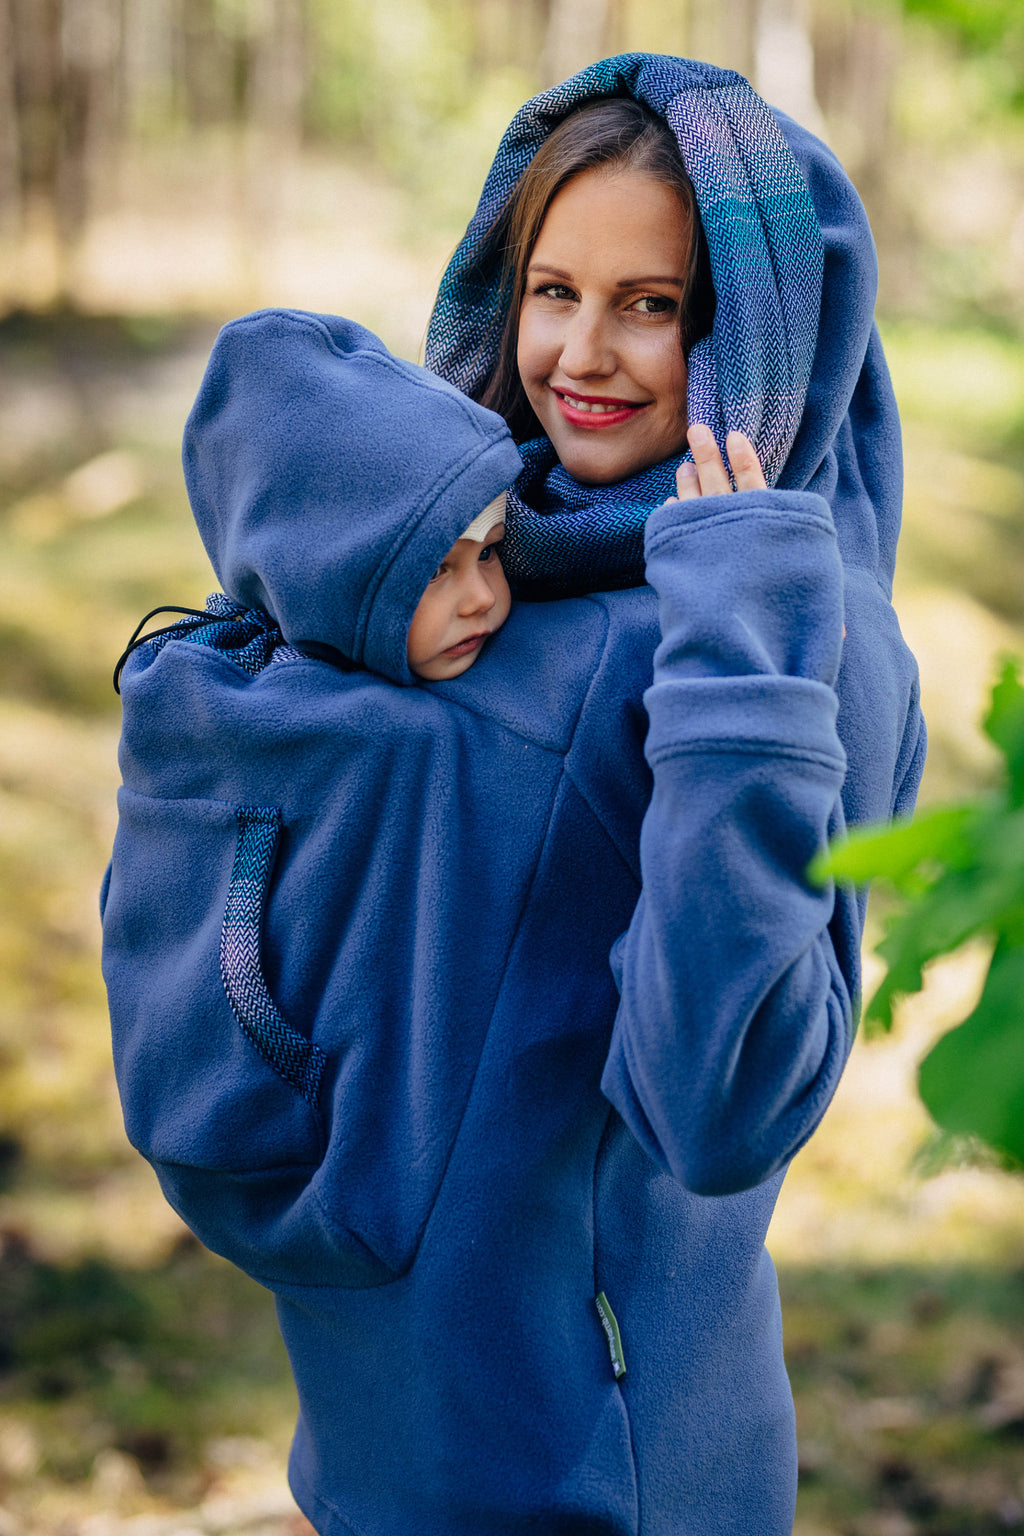 Lenny Lamb Fleece Babywearing Sweatshirt *Version 2.0* - Small left only - Slings and Things